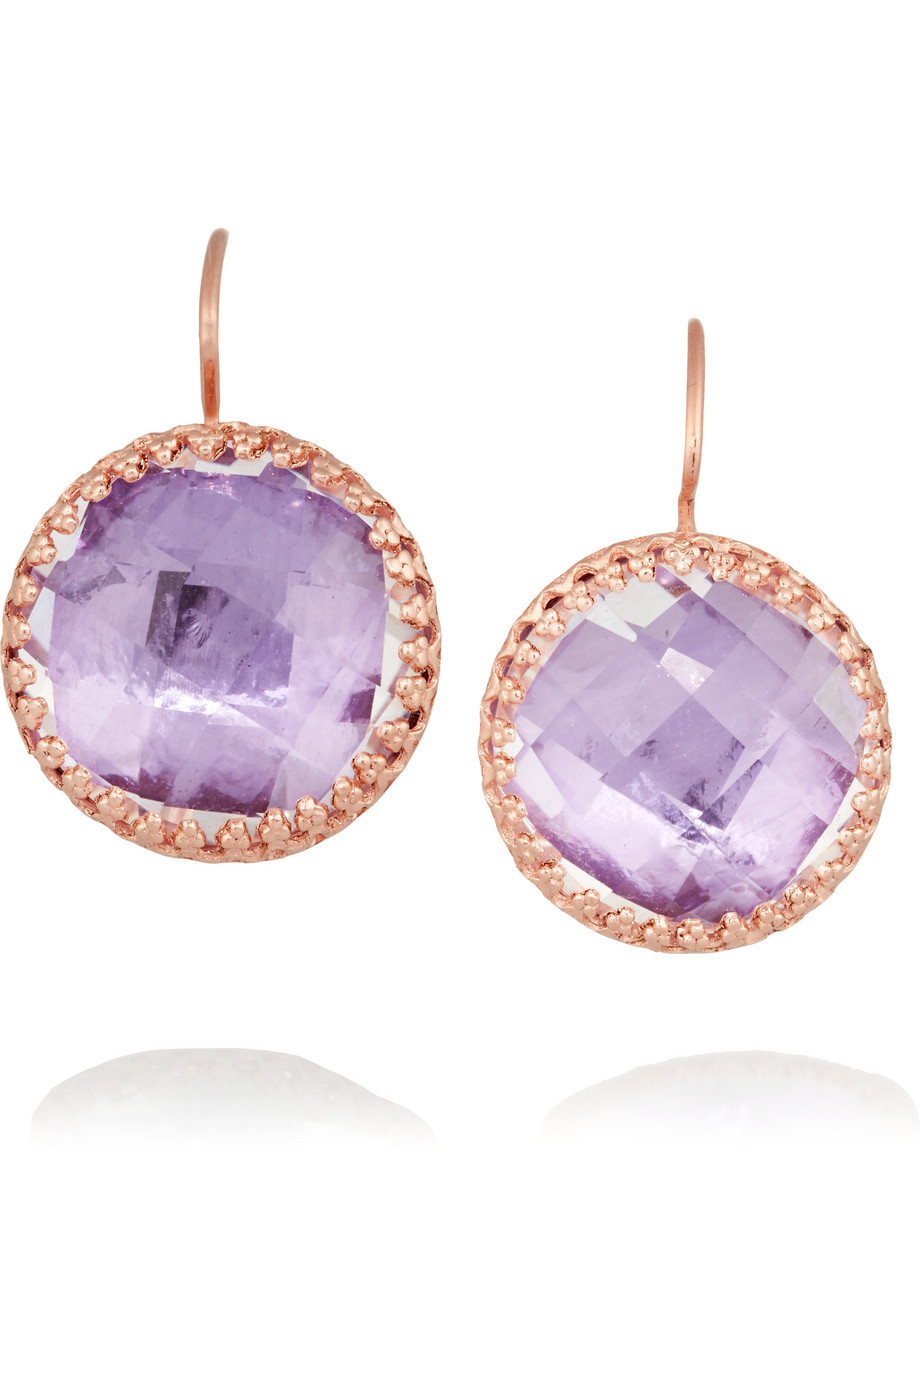 Larkspur & Hawk Olivia Button Rose Gold-Dipped Topaz Earrings, Rose Gold/Purple, Women's